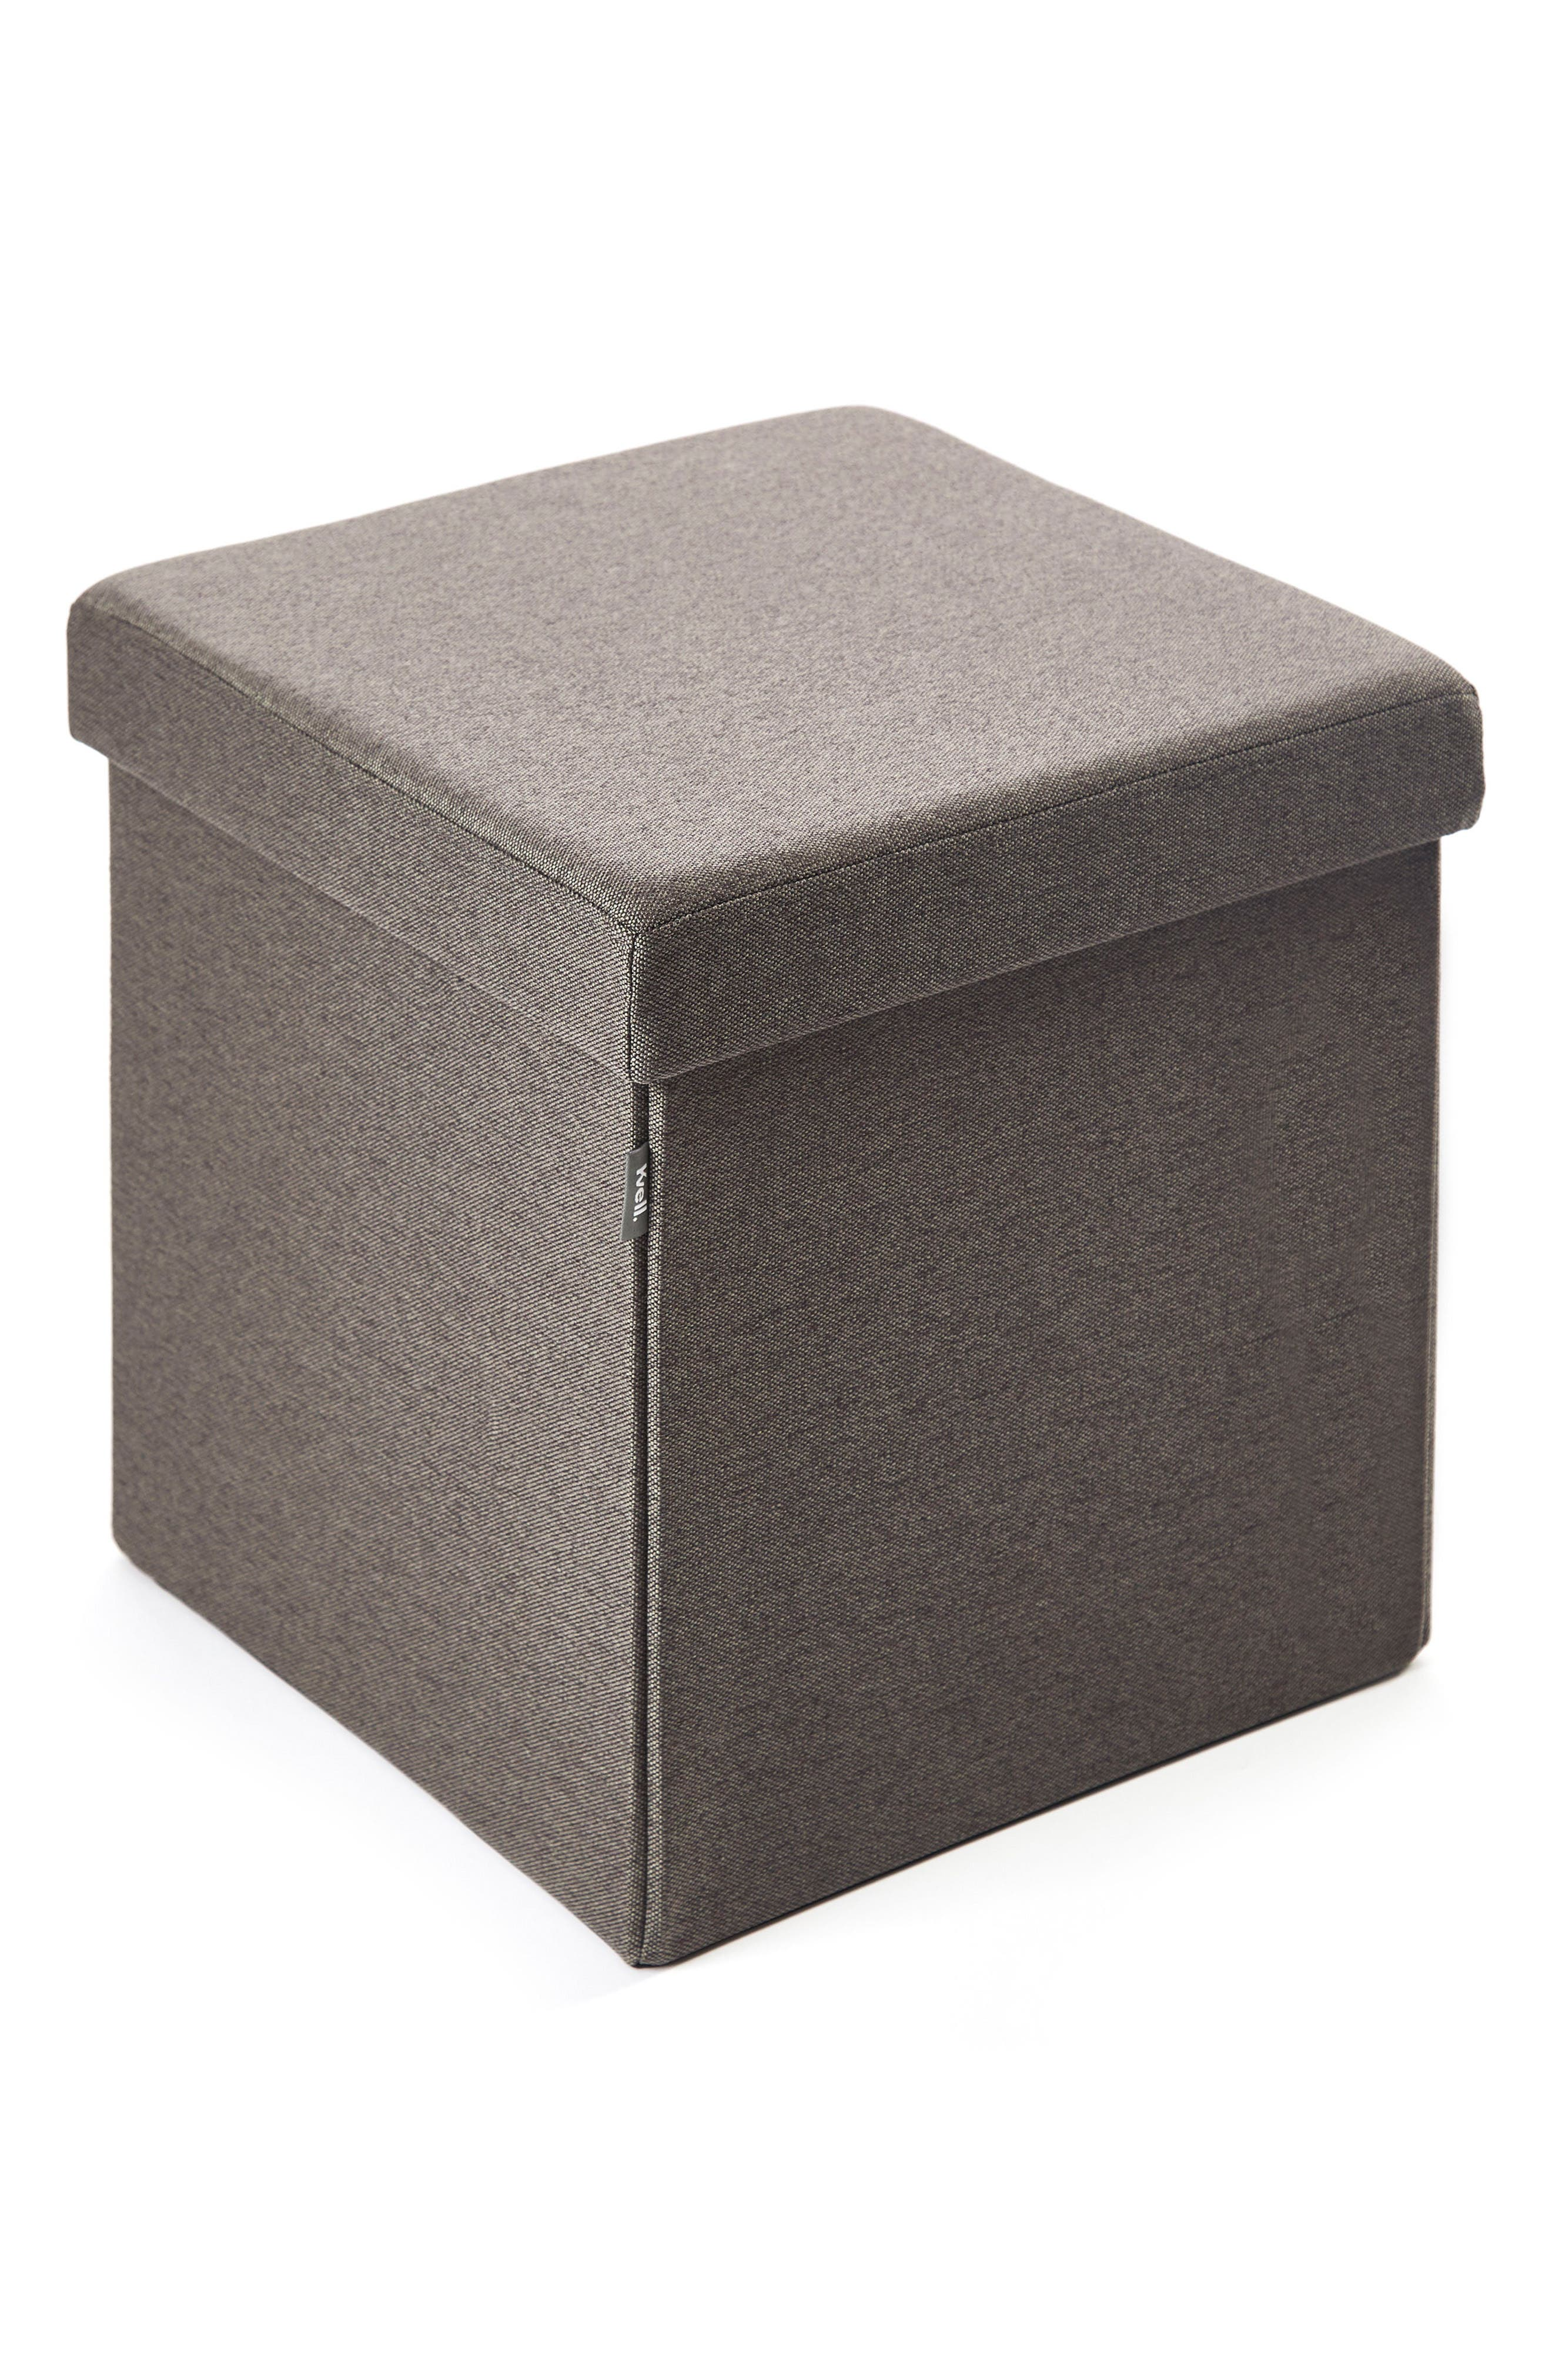 Kube Collapsible Storage Ottoman,                             Main thumbnail 1, color,                             MODEST GREY